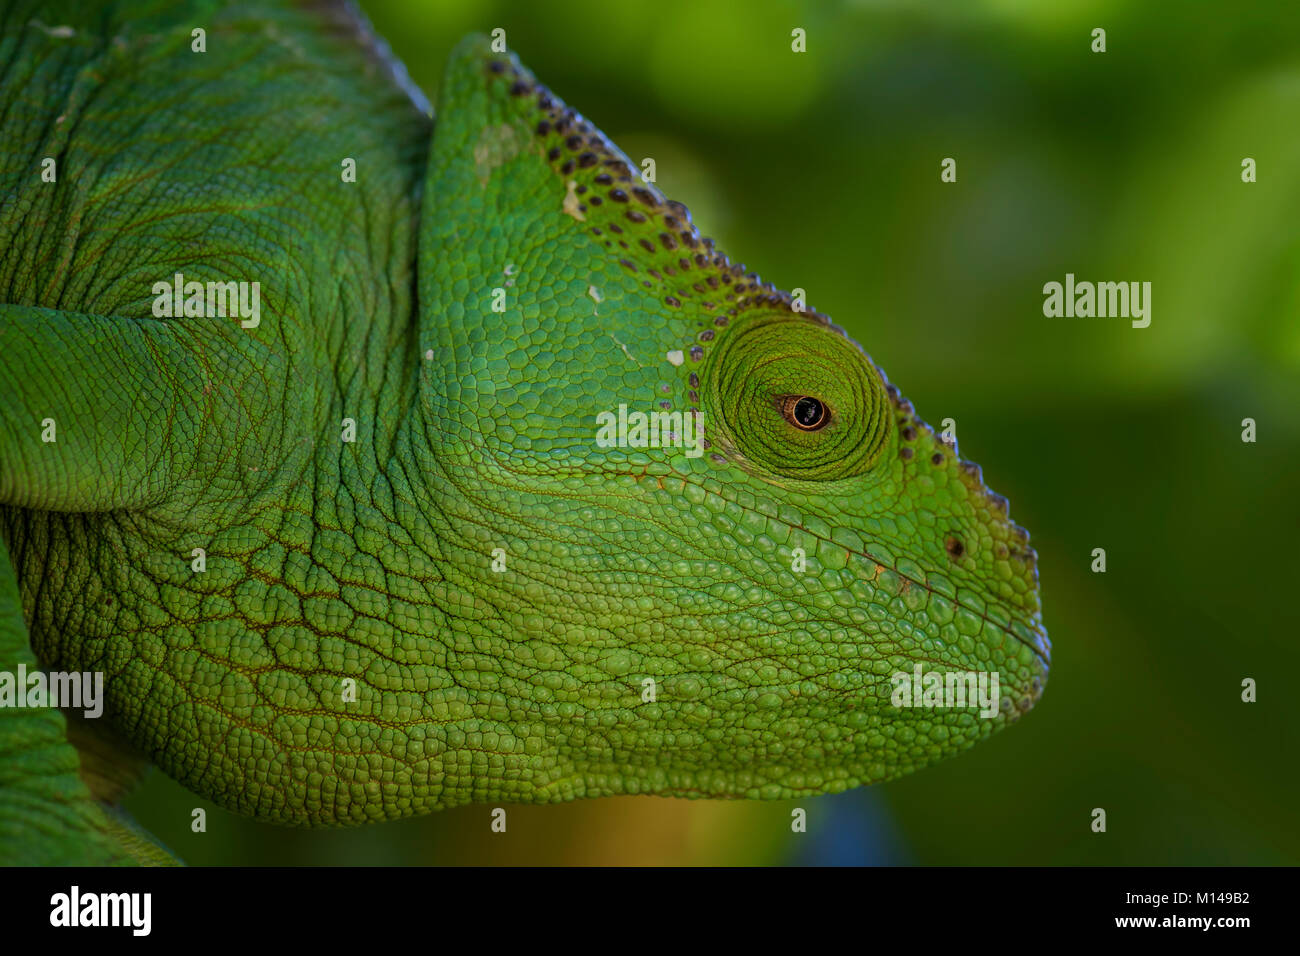 Parson's Chameleon - Calumma parsonii, rain forest Madagascar east coast. Colourful endemic lizard. - Stock Image